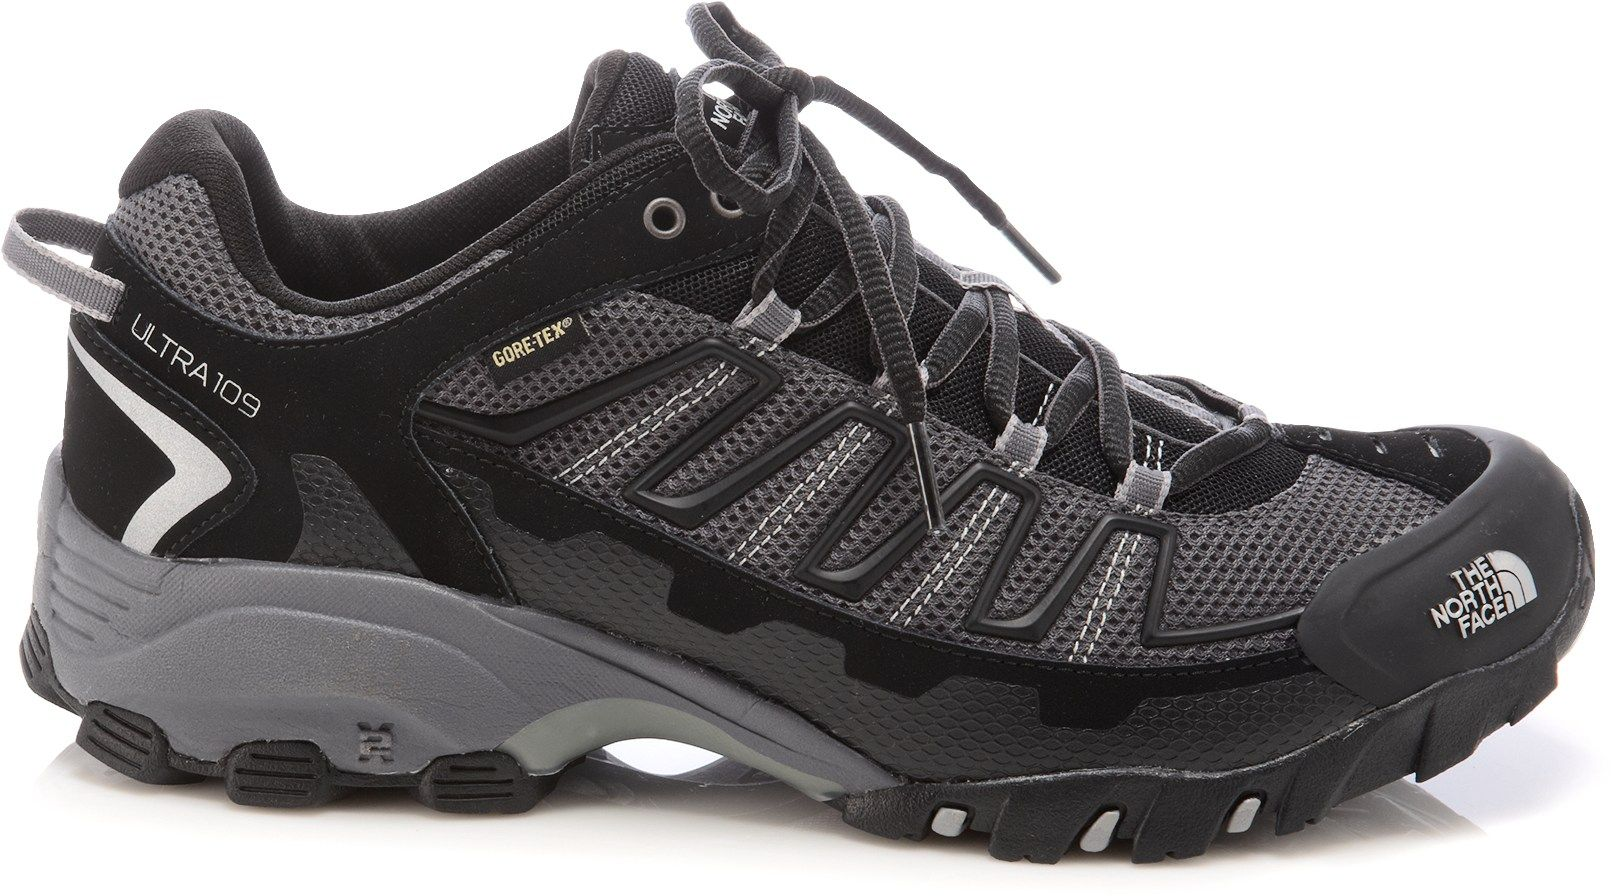 The North Face Ultra 109 Gore Tex XCR Trail Running Shoes